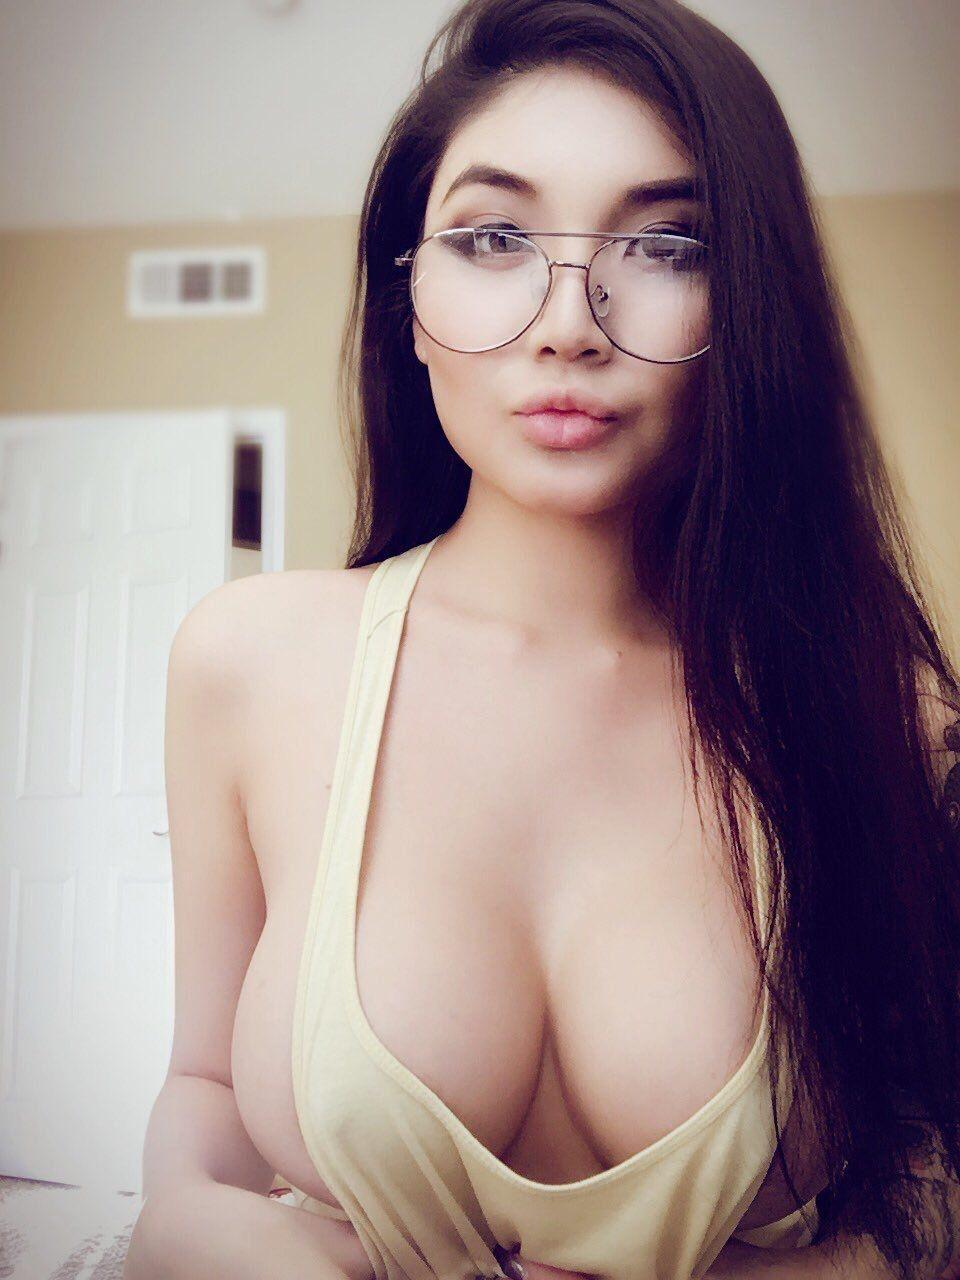 Gabrielle recommend Gaysex interracial pinupfiles stockings